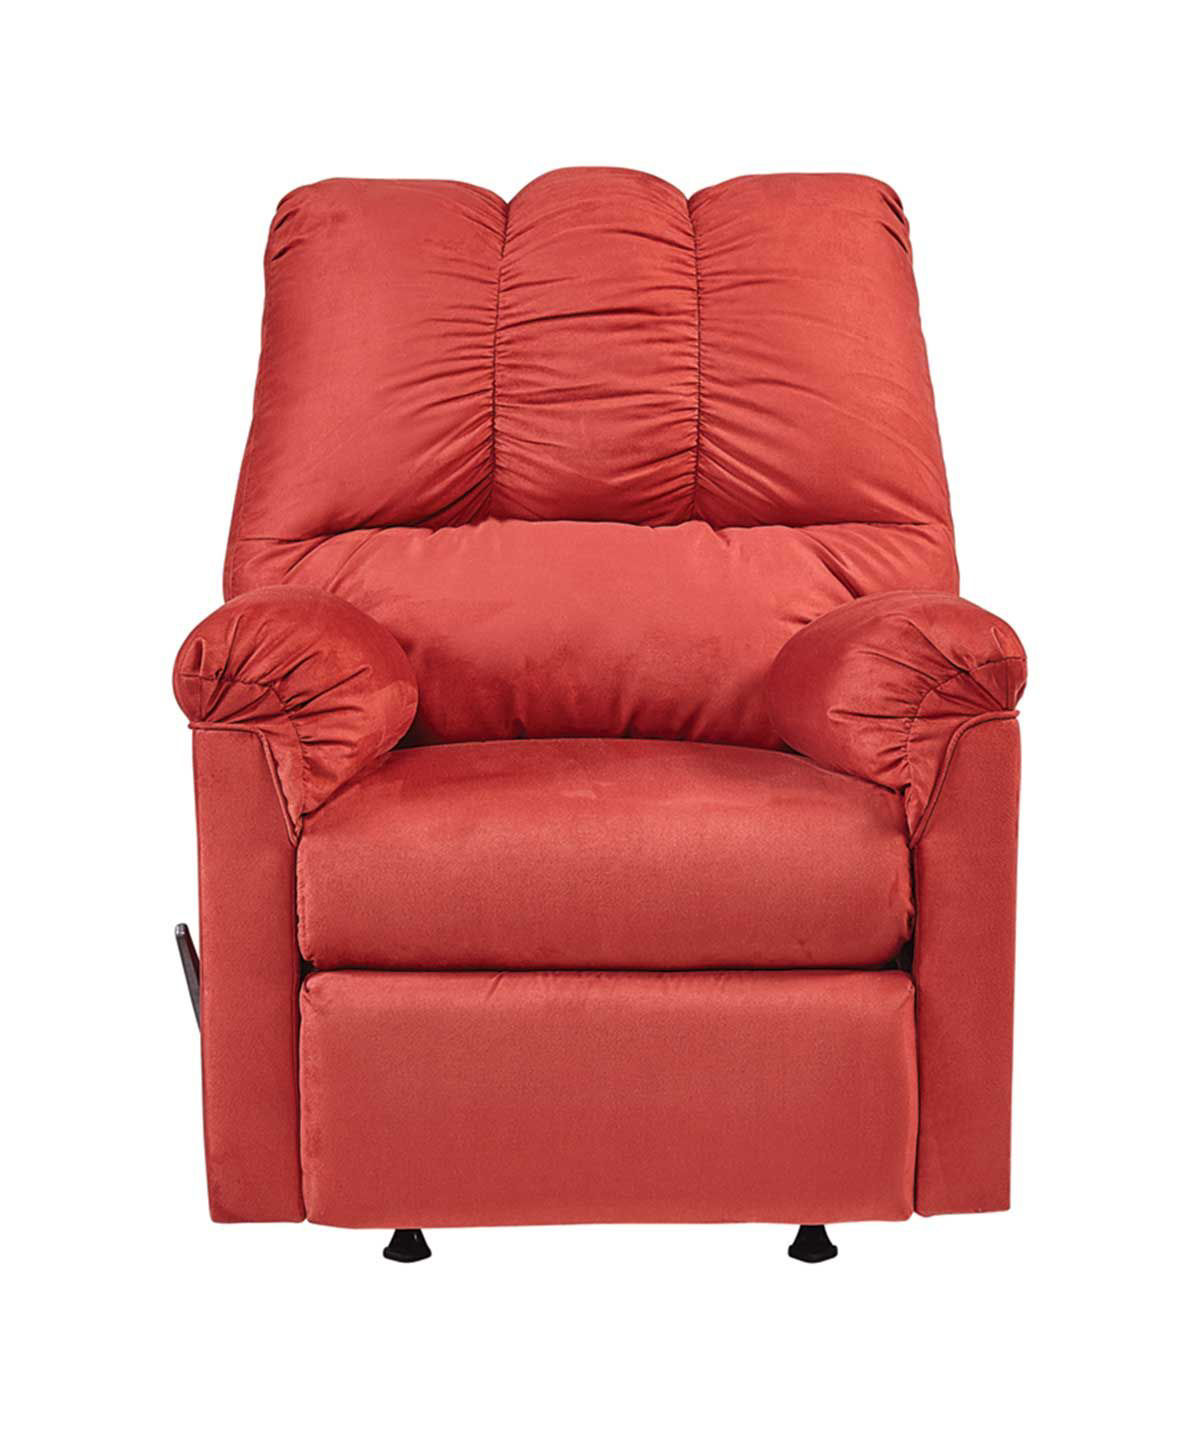 Picture of EMMA BRICK ROCKER RECLINER